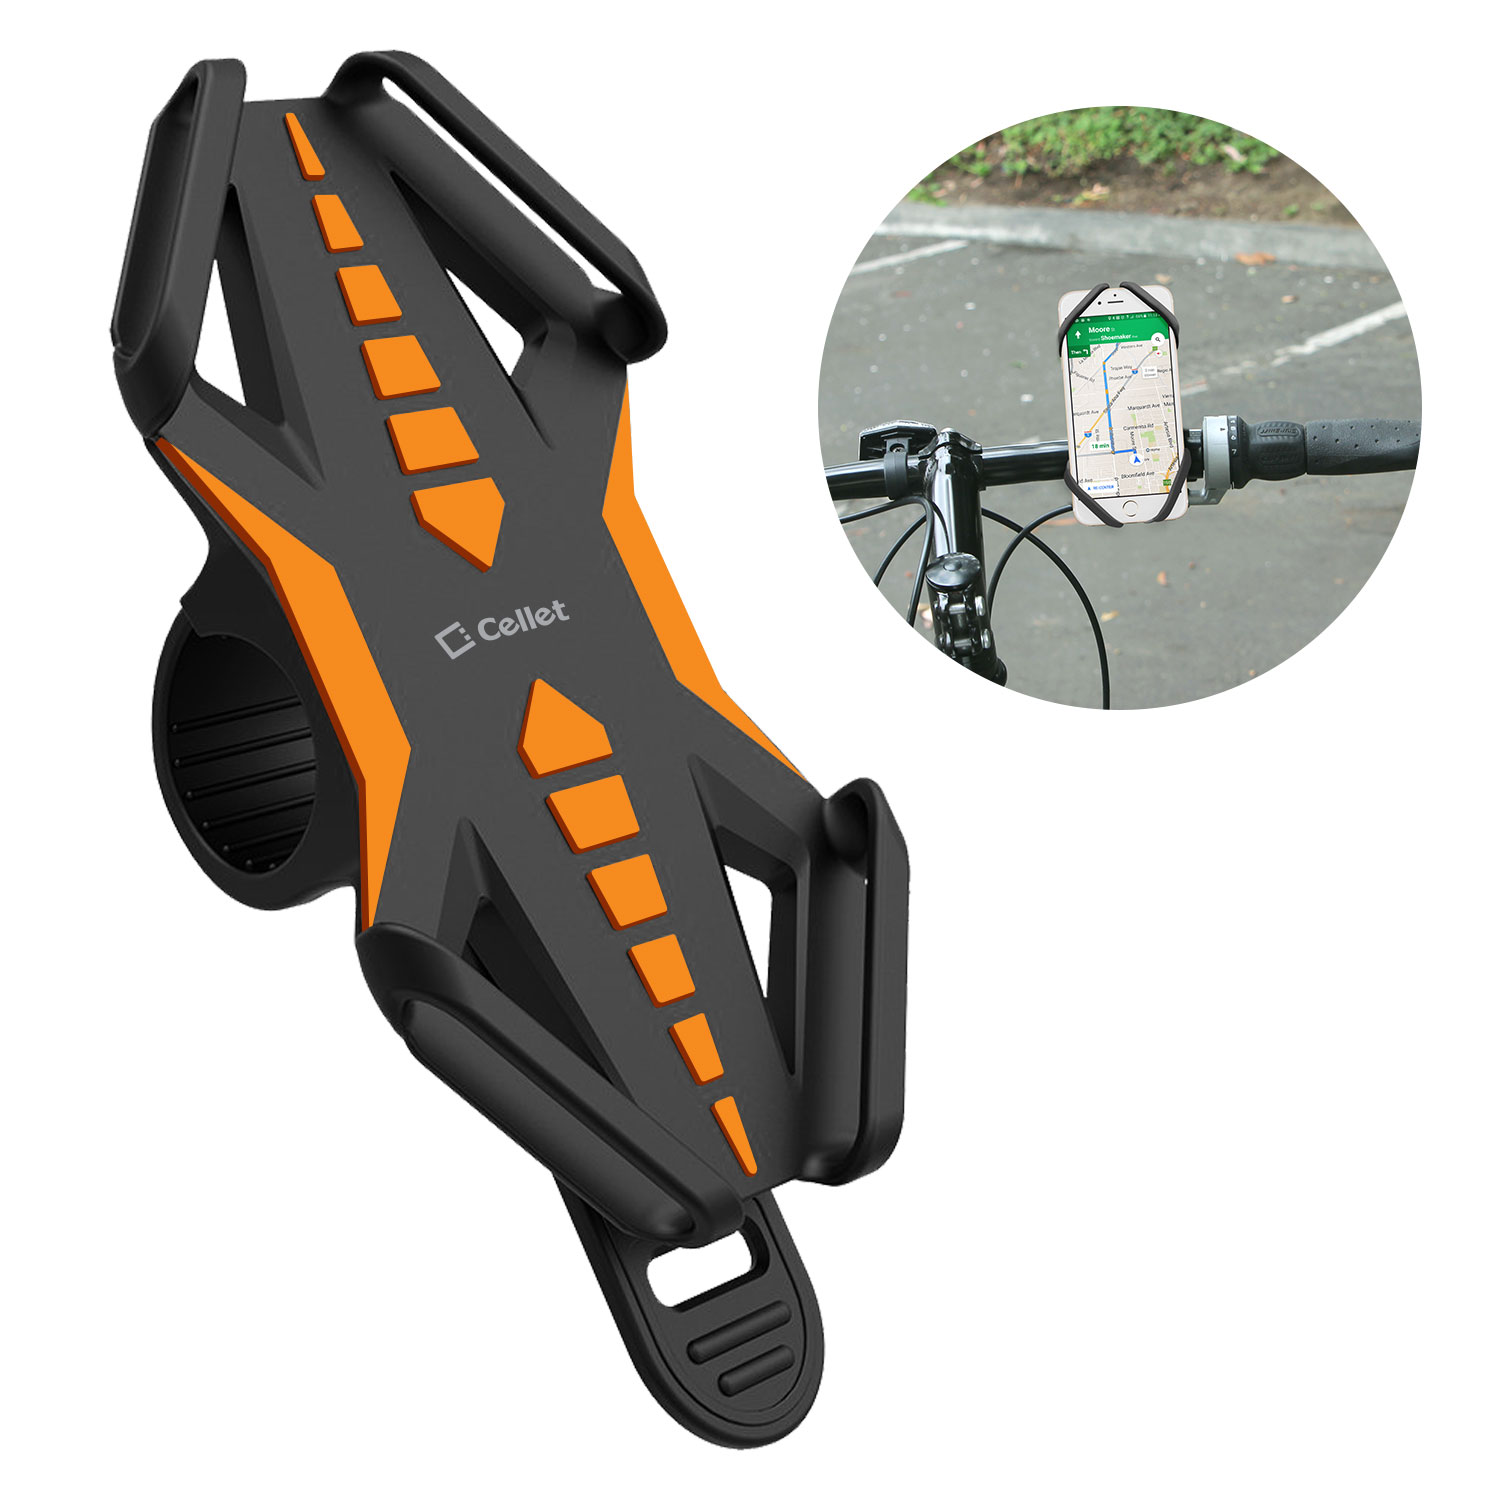 Kyocera Hydro Reach Bike Phone Mount Silicone Orange